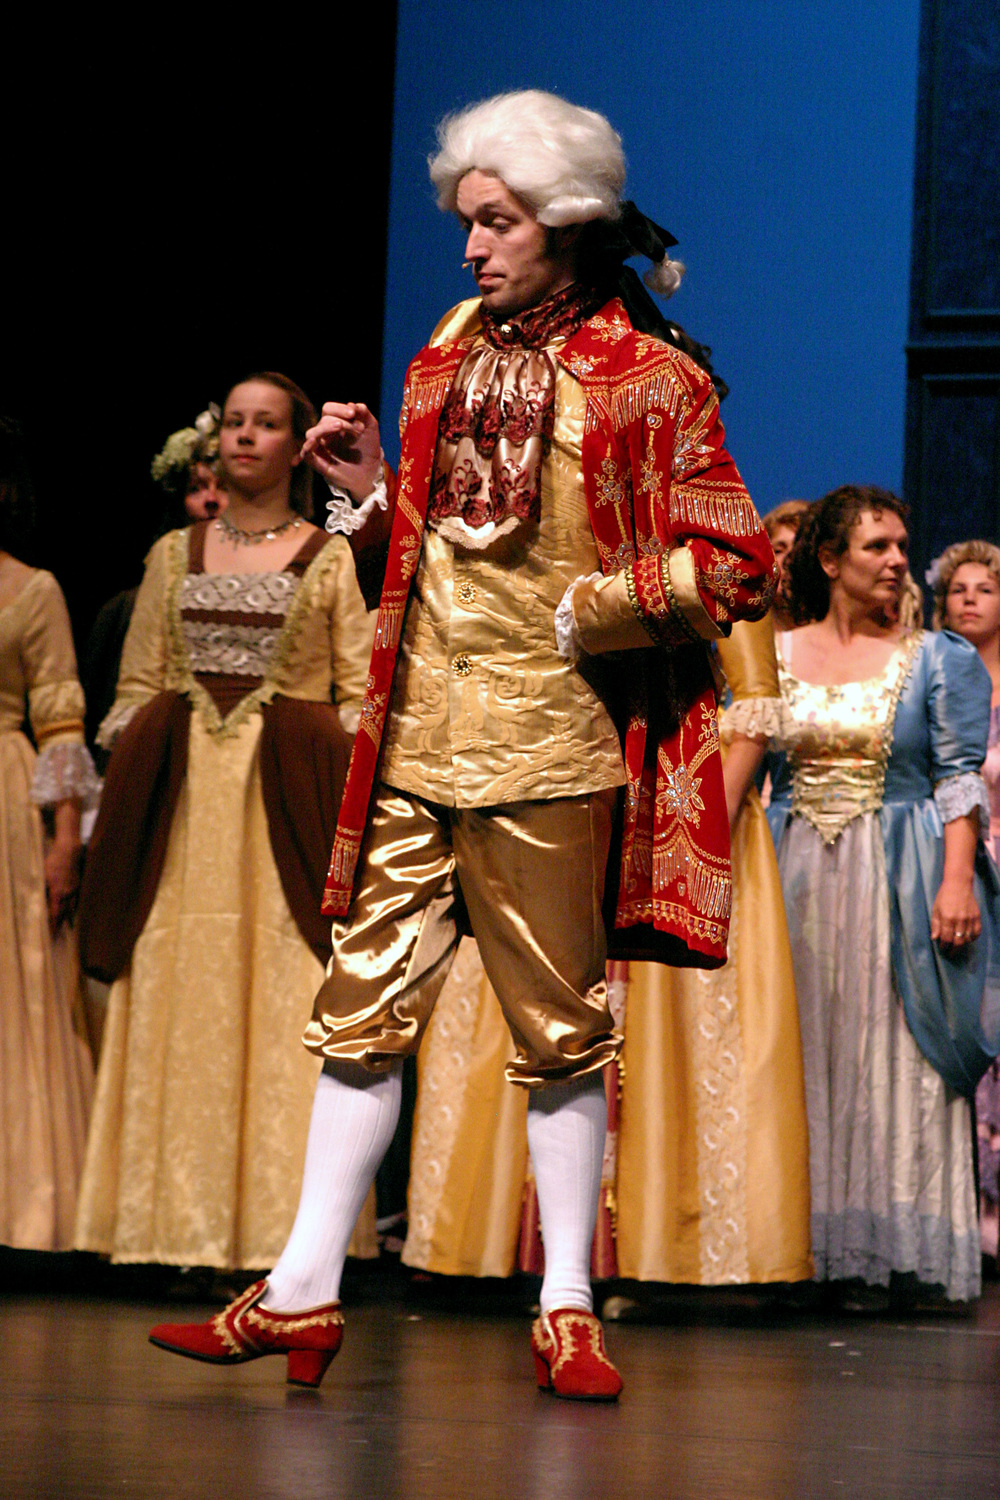 091 - The Scarlet Pimpernel 2005 - Generale.jpg